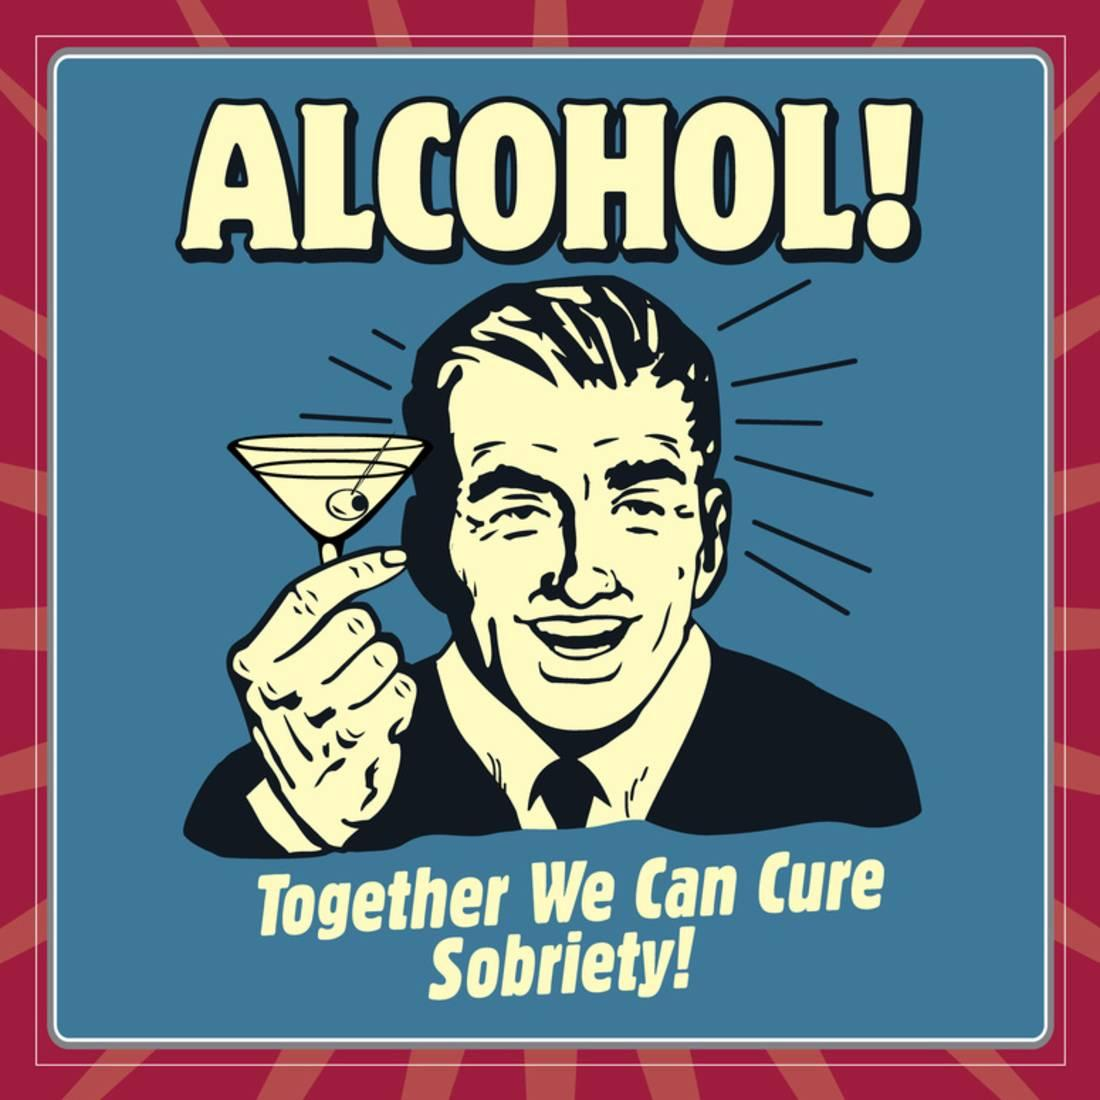 12x12 Poster Alcohol Together We Can Cure Sobriety Poster By